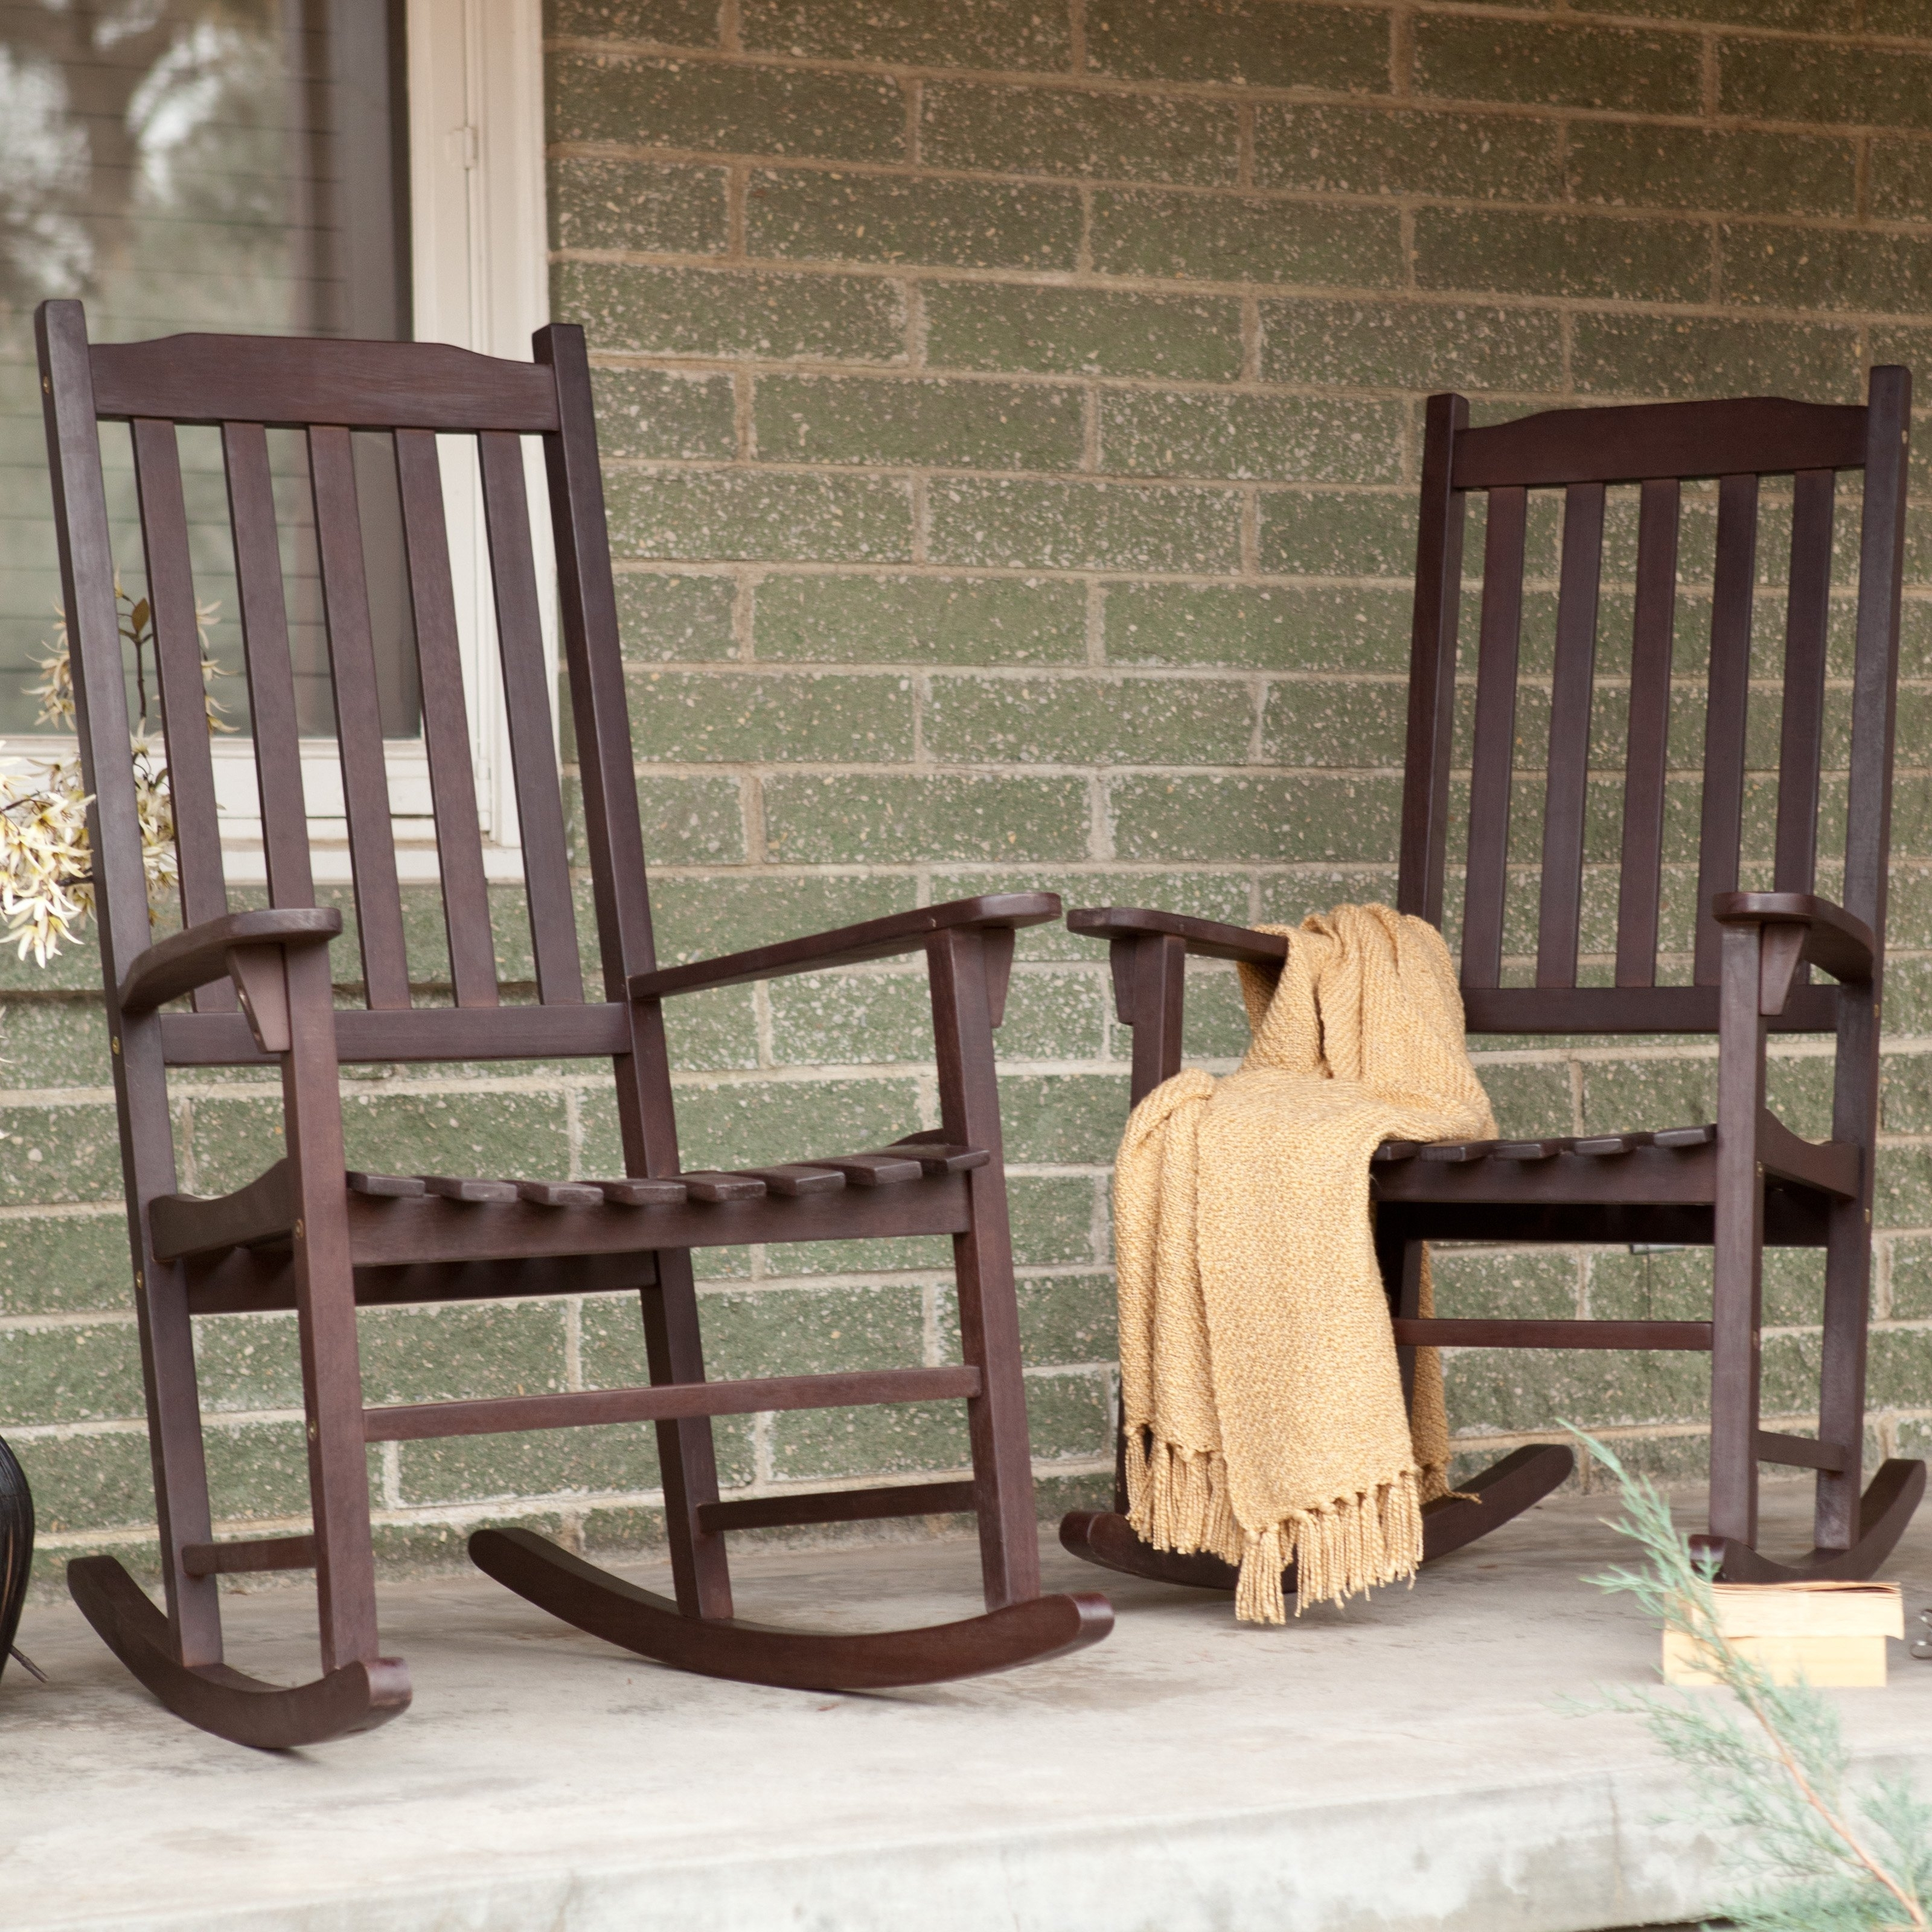 Well Liked Patio Furniture Rocking Benches With Category : Furnishings & Home Accents Yard Patio #e0F8667Db5A (View 15 of 15)